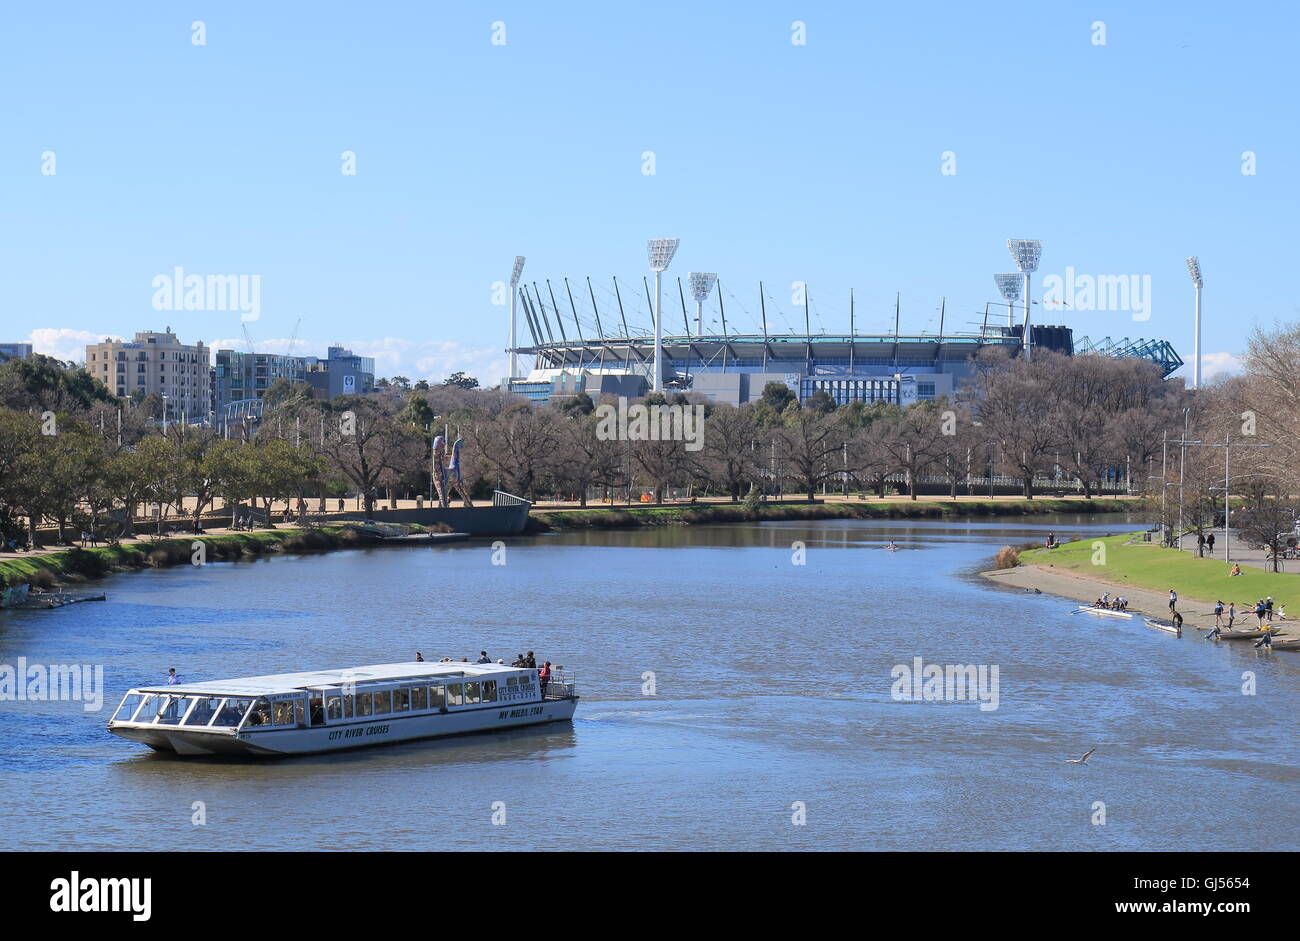 Sightseeing boat cruises in Yarra river MCG in background in Melbourne Australia. - Stock Image